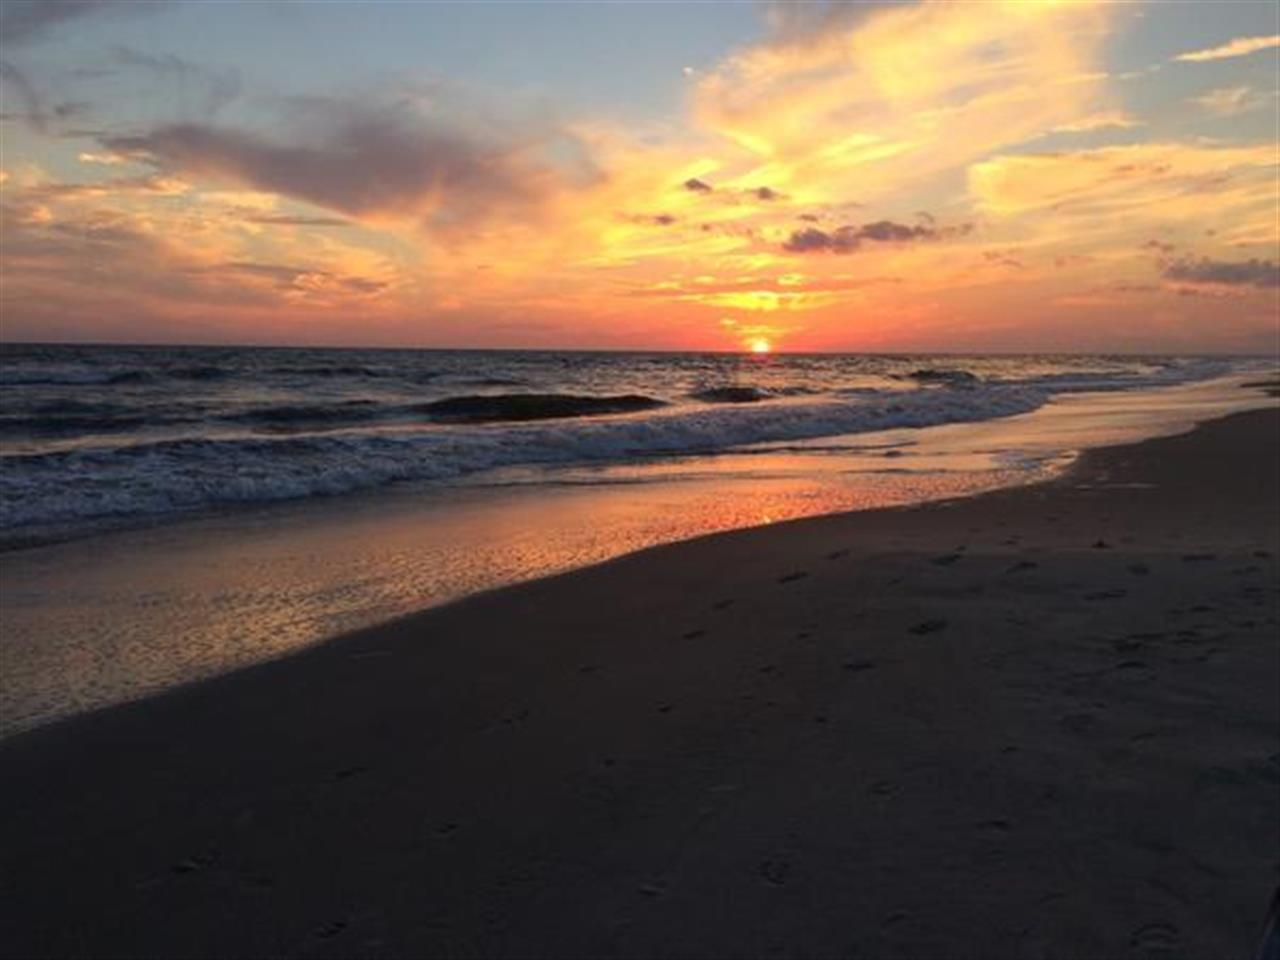 Love our gorgeous Carolina beaches, especially at sunrise & sunset!  #OakIsland  #LeadingRElocal #NorthCarolina